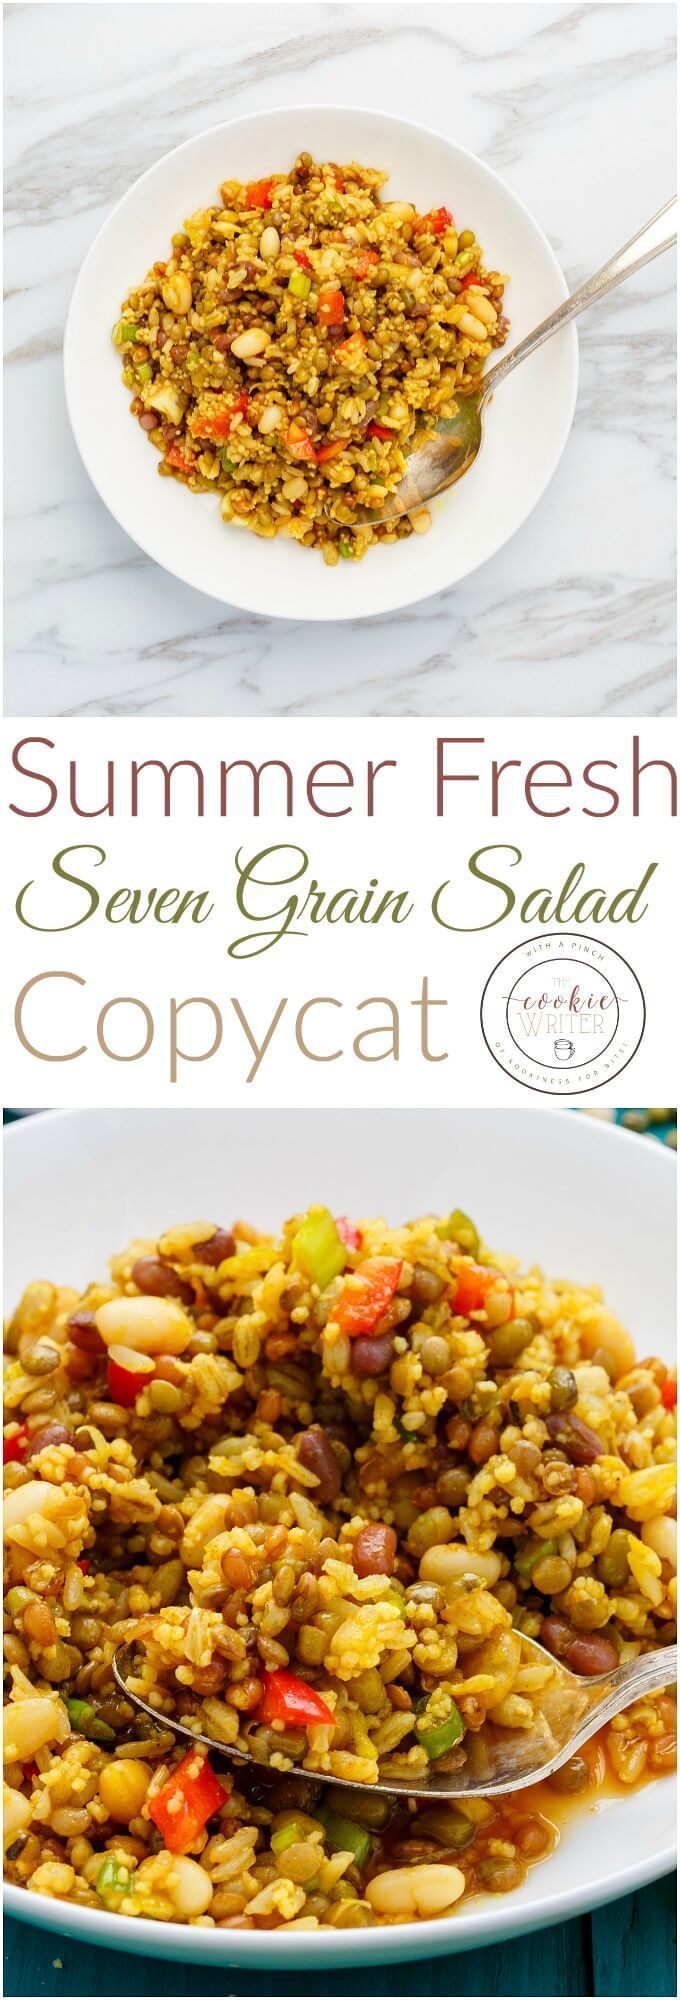 Summer Fresh Seven Grain Salad Copycat #cookiesalad